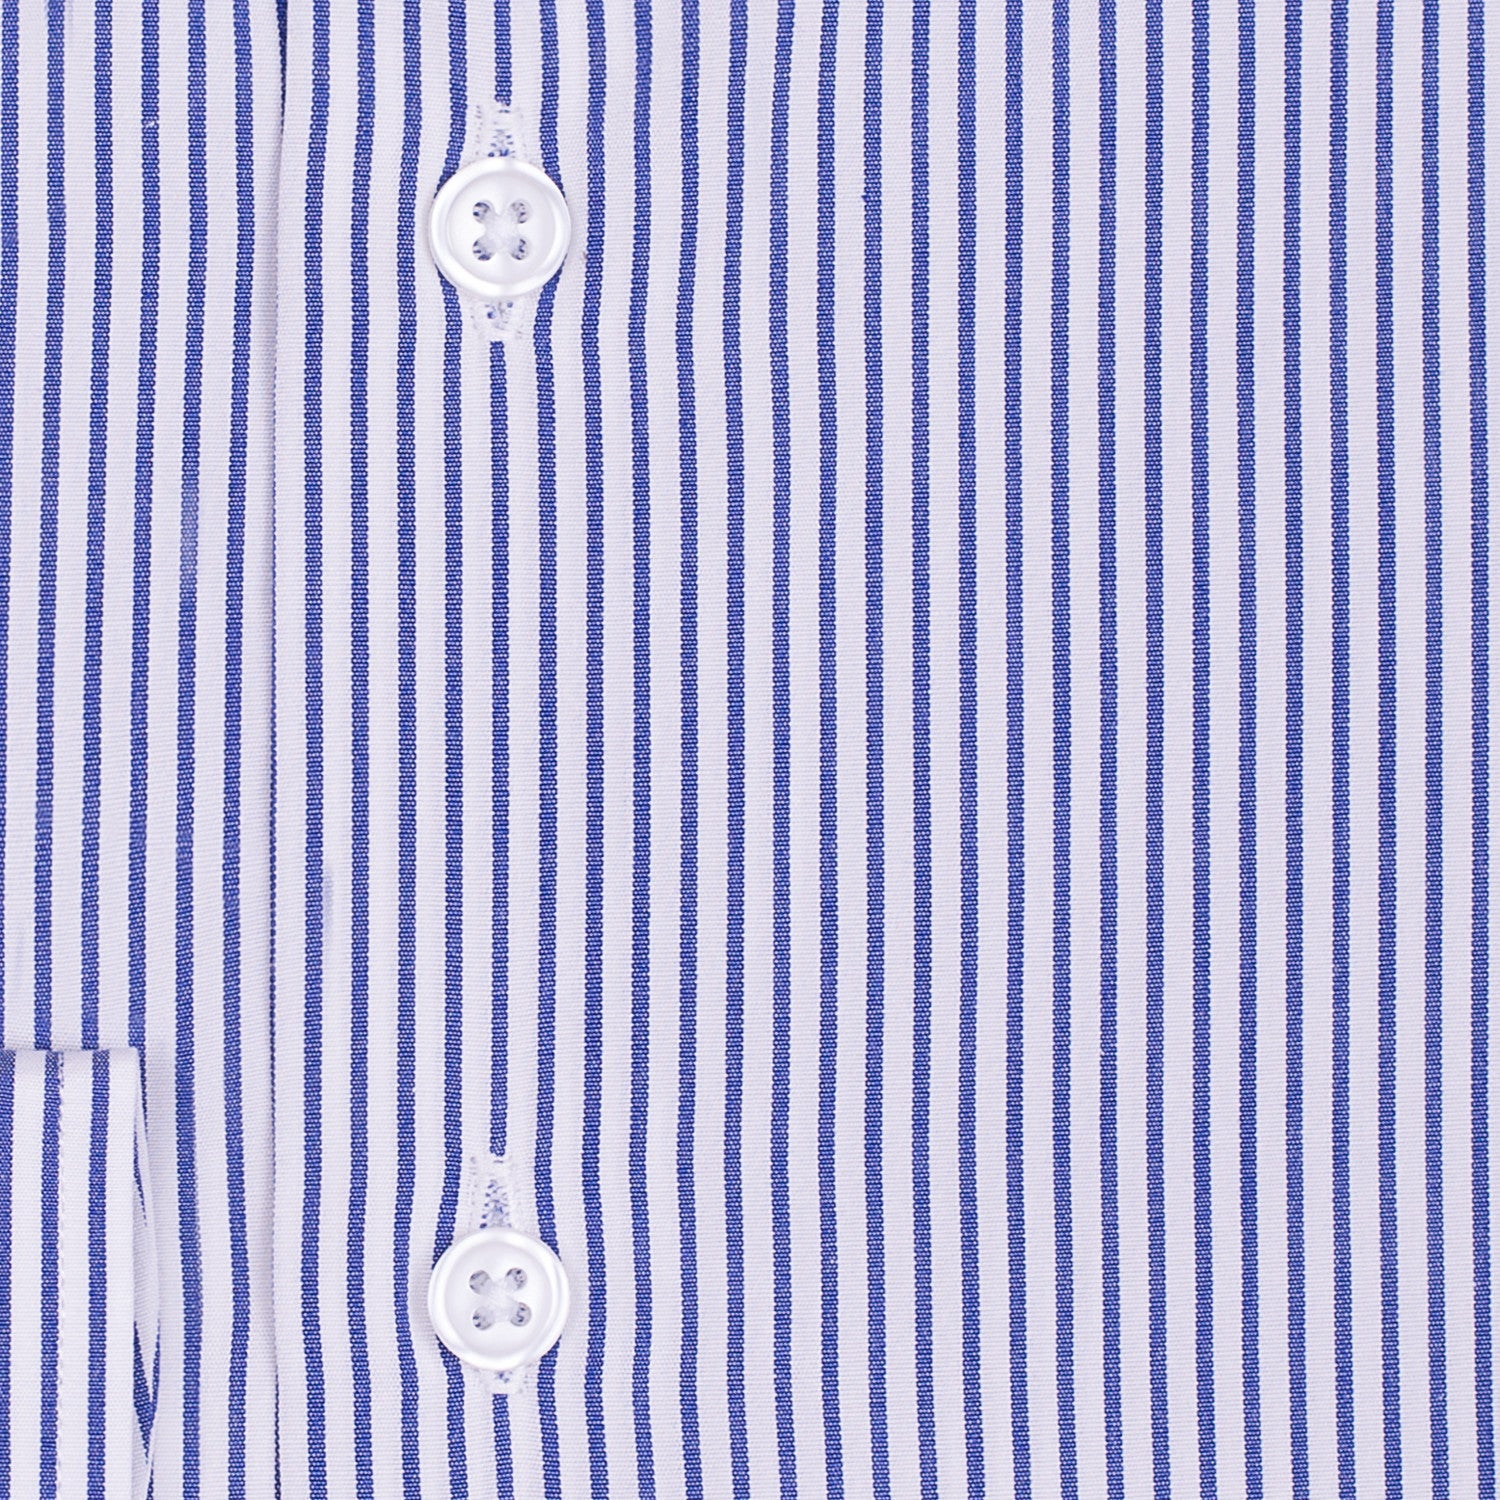 Bespoke - White & Dark Blue Medium Striped Shirt